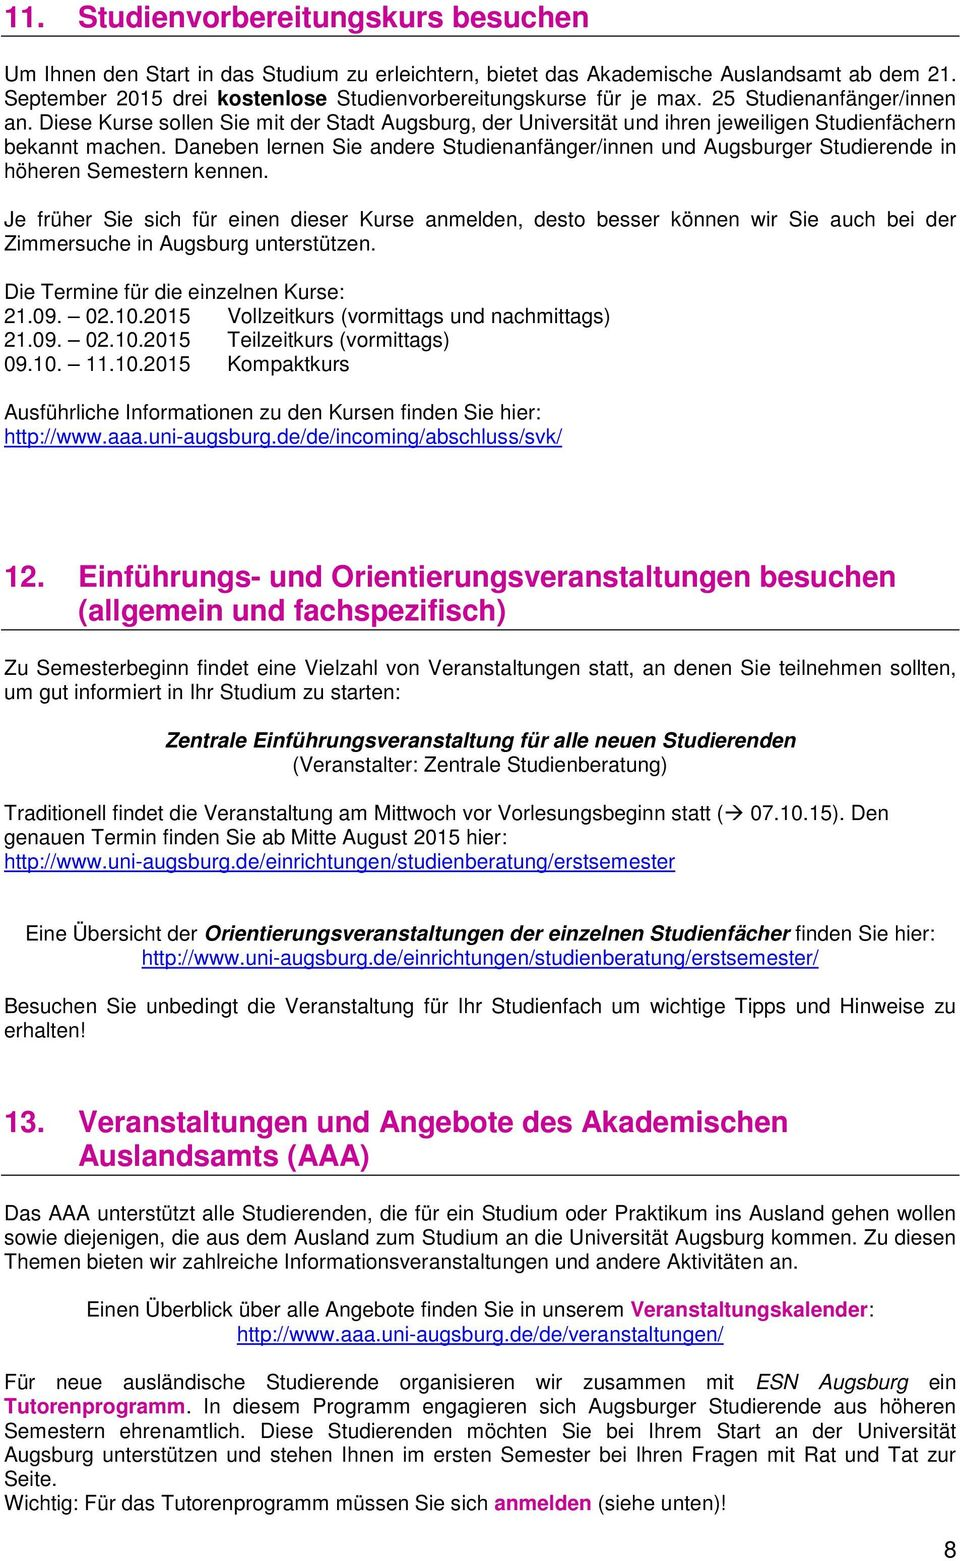 antrag personalausweis augsburg